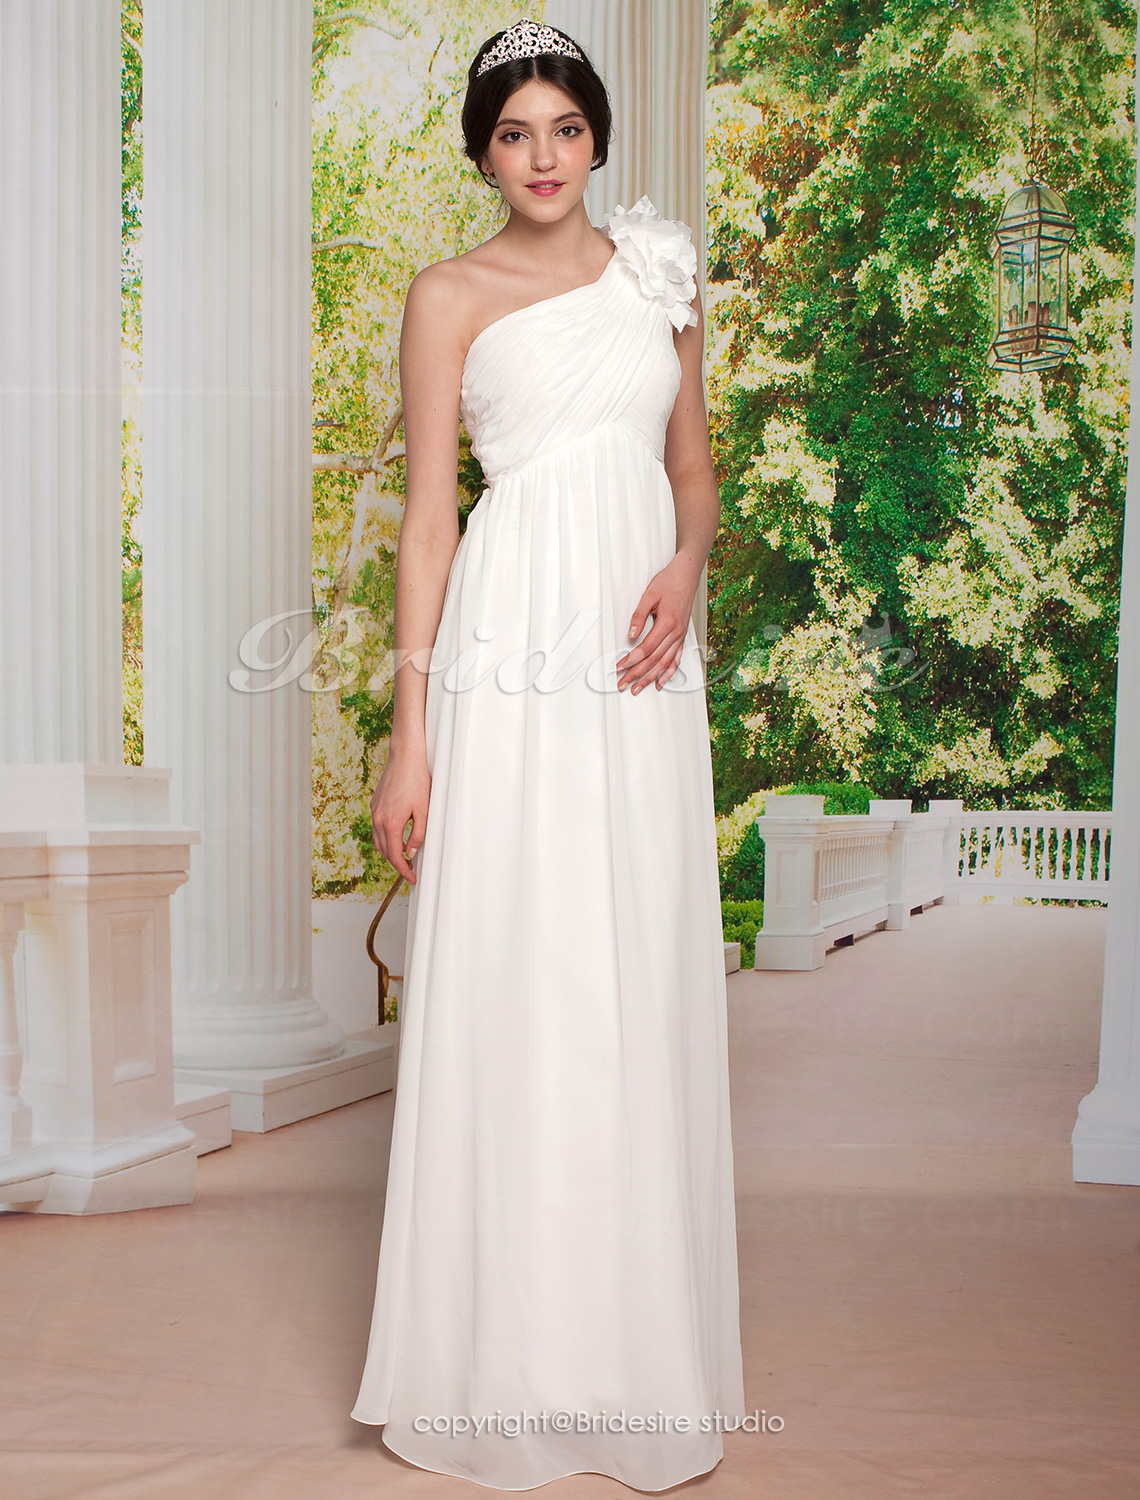 Sheath/ Column Chiffon Floor-length One Shoulder Wedding Dress